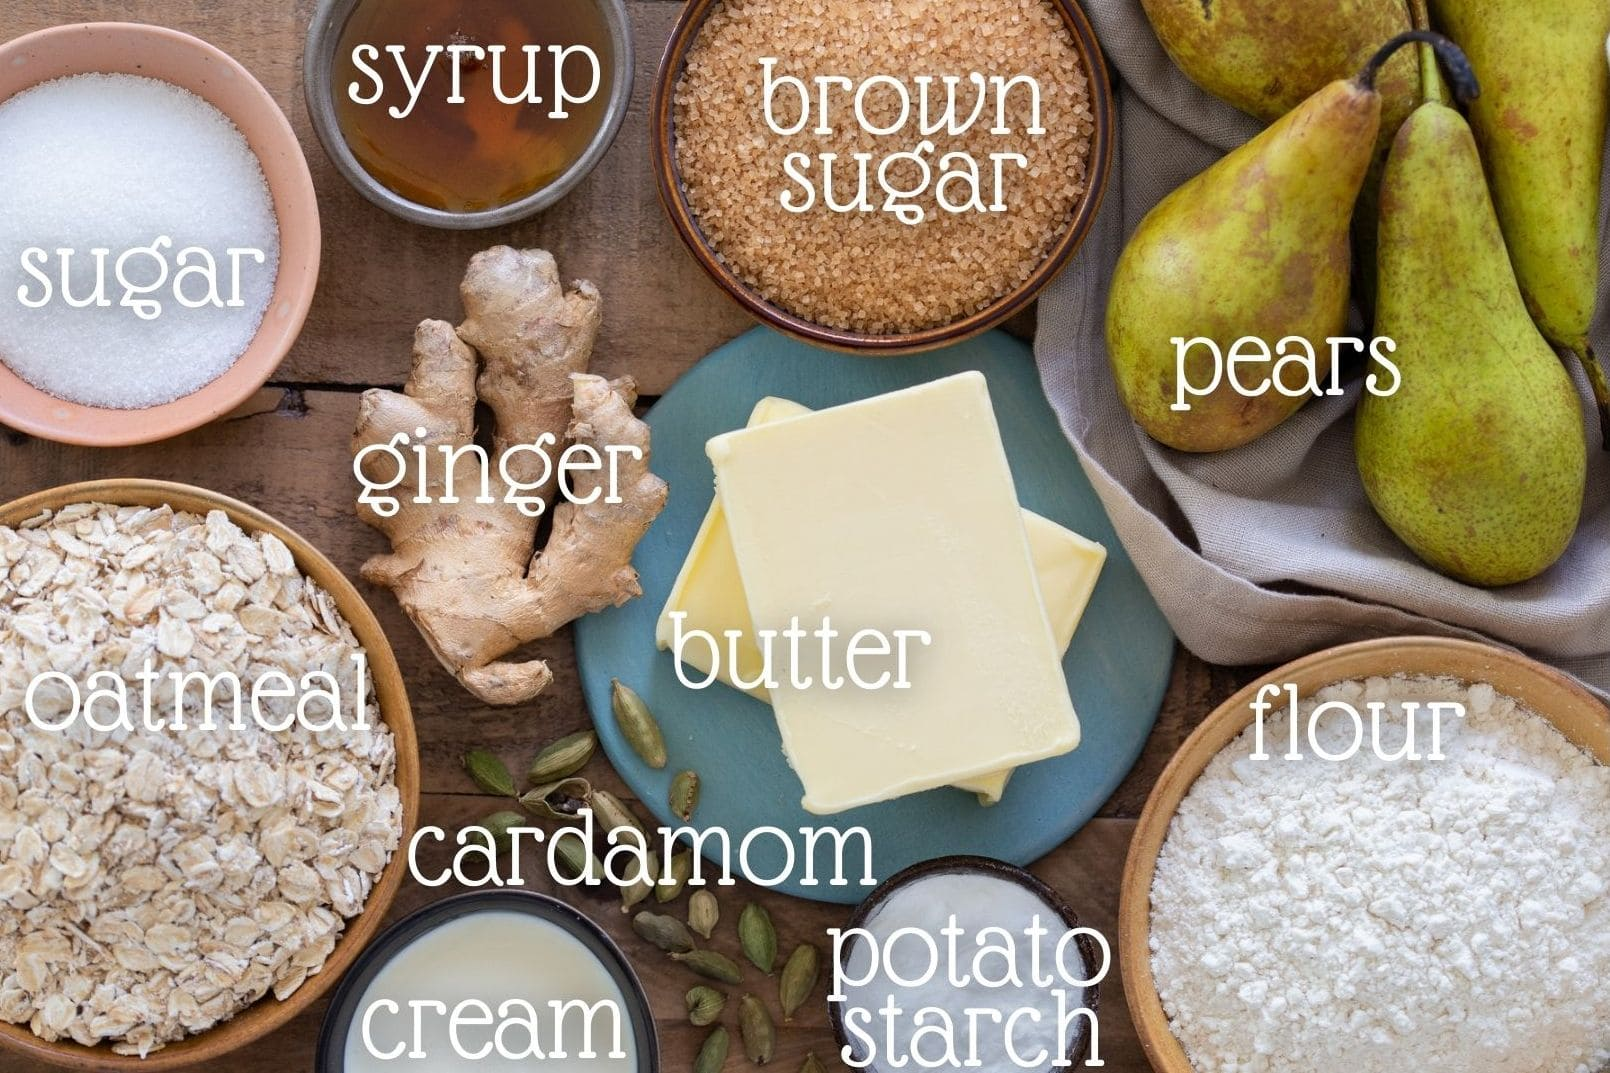 Overhead image of the ingredients needed in the recipe.